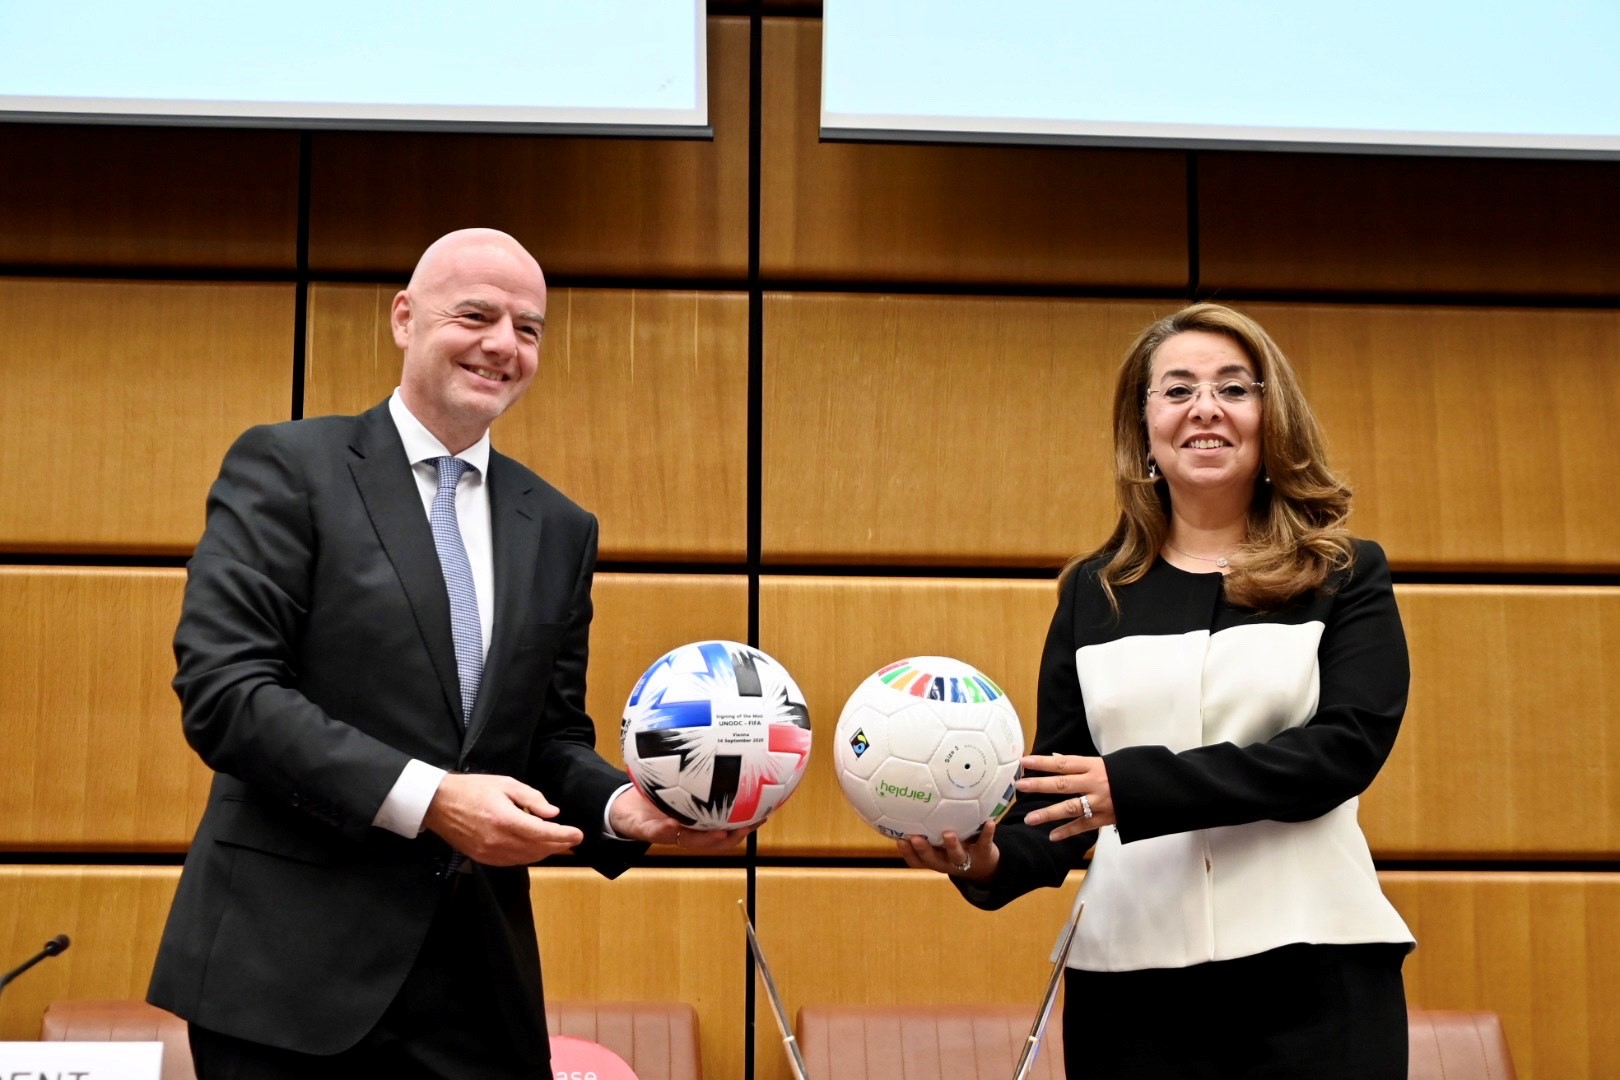 PRESS RELEASE - UNODC, FIFA partner to kick out corruption and foster youth development through football